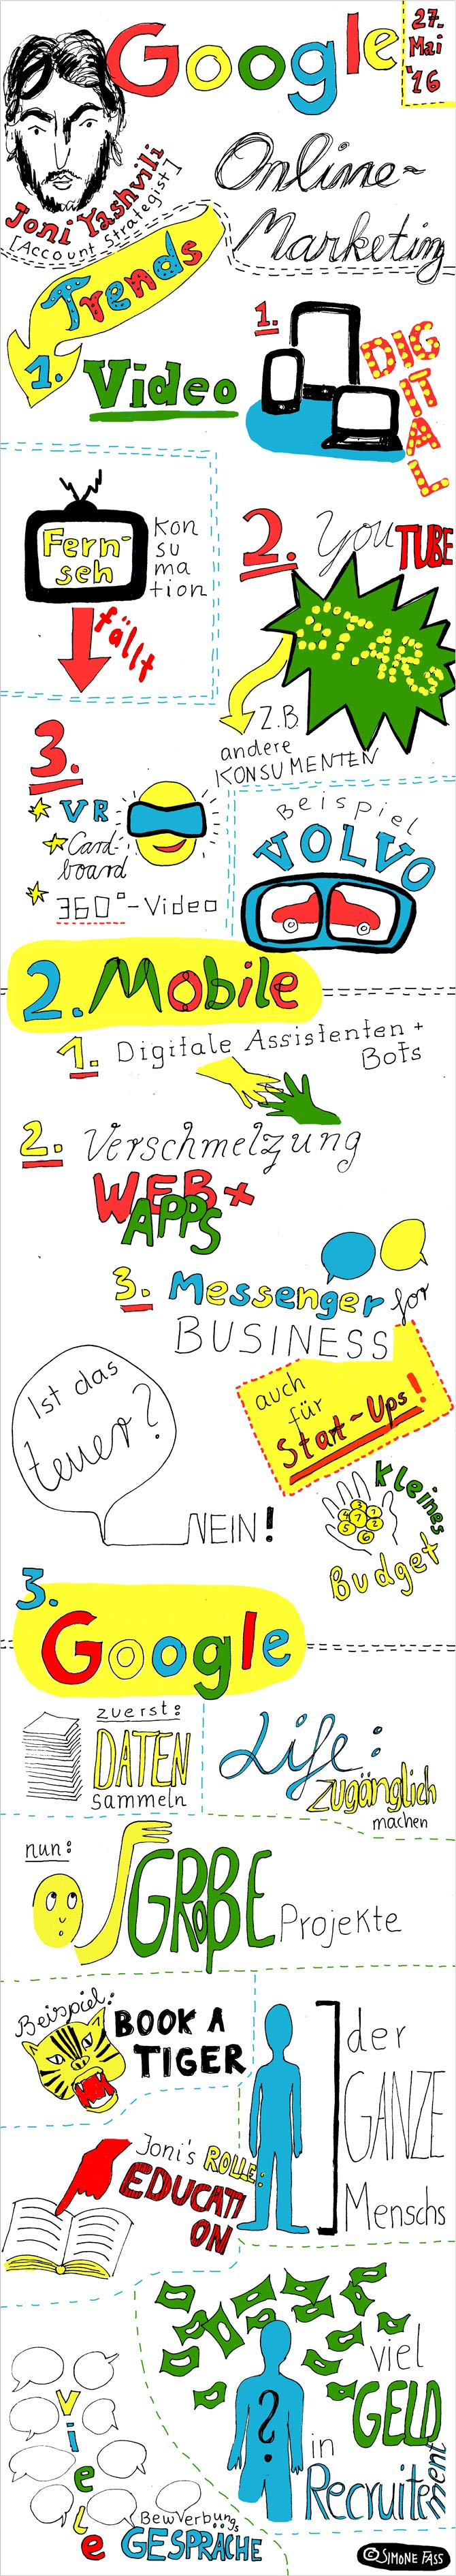 Sechtse Folge aus der Serie der Digital-Workshop-Sketchnotes. Joni Yashvili (Account Sttrategist bei Google)r sprach über die neusten Tendenzenim Google Online Marketing